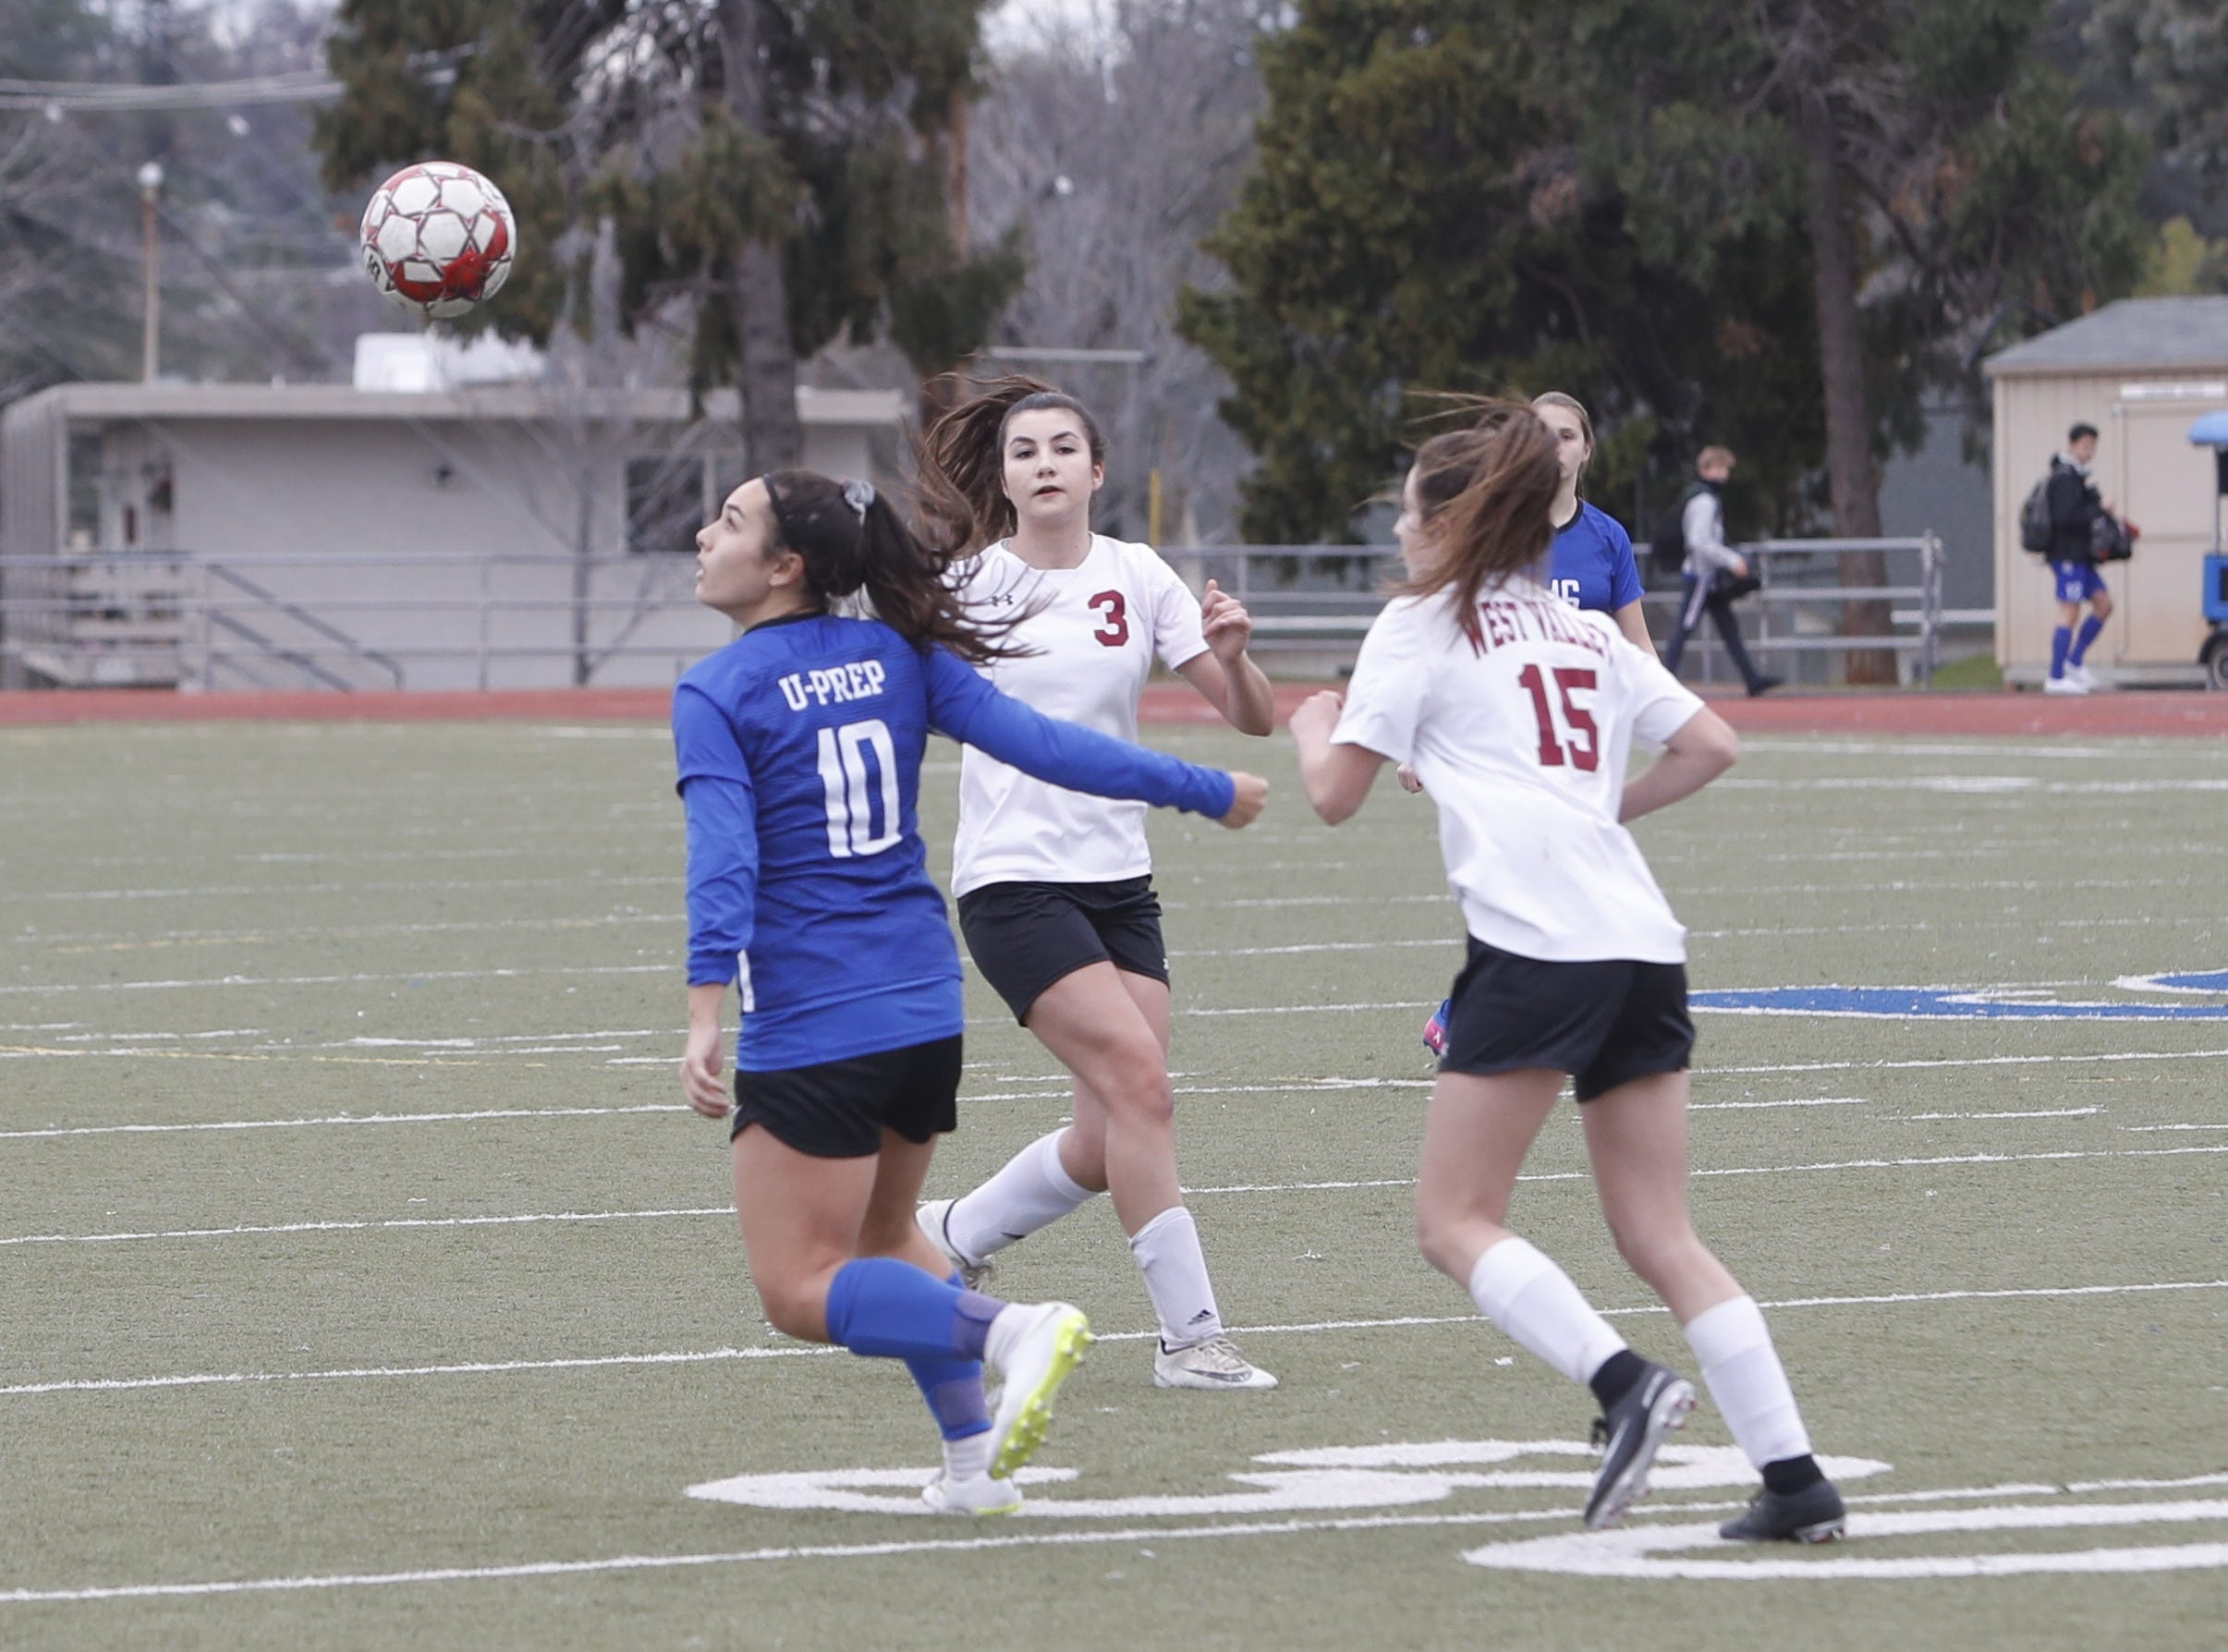 U-Prep midfielder Haley Bramante looks to control the ball during the Panthers' 4-1 win at home over West Valley on Thursday, Feb. 7, 2019.